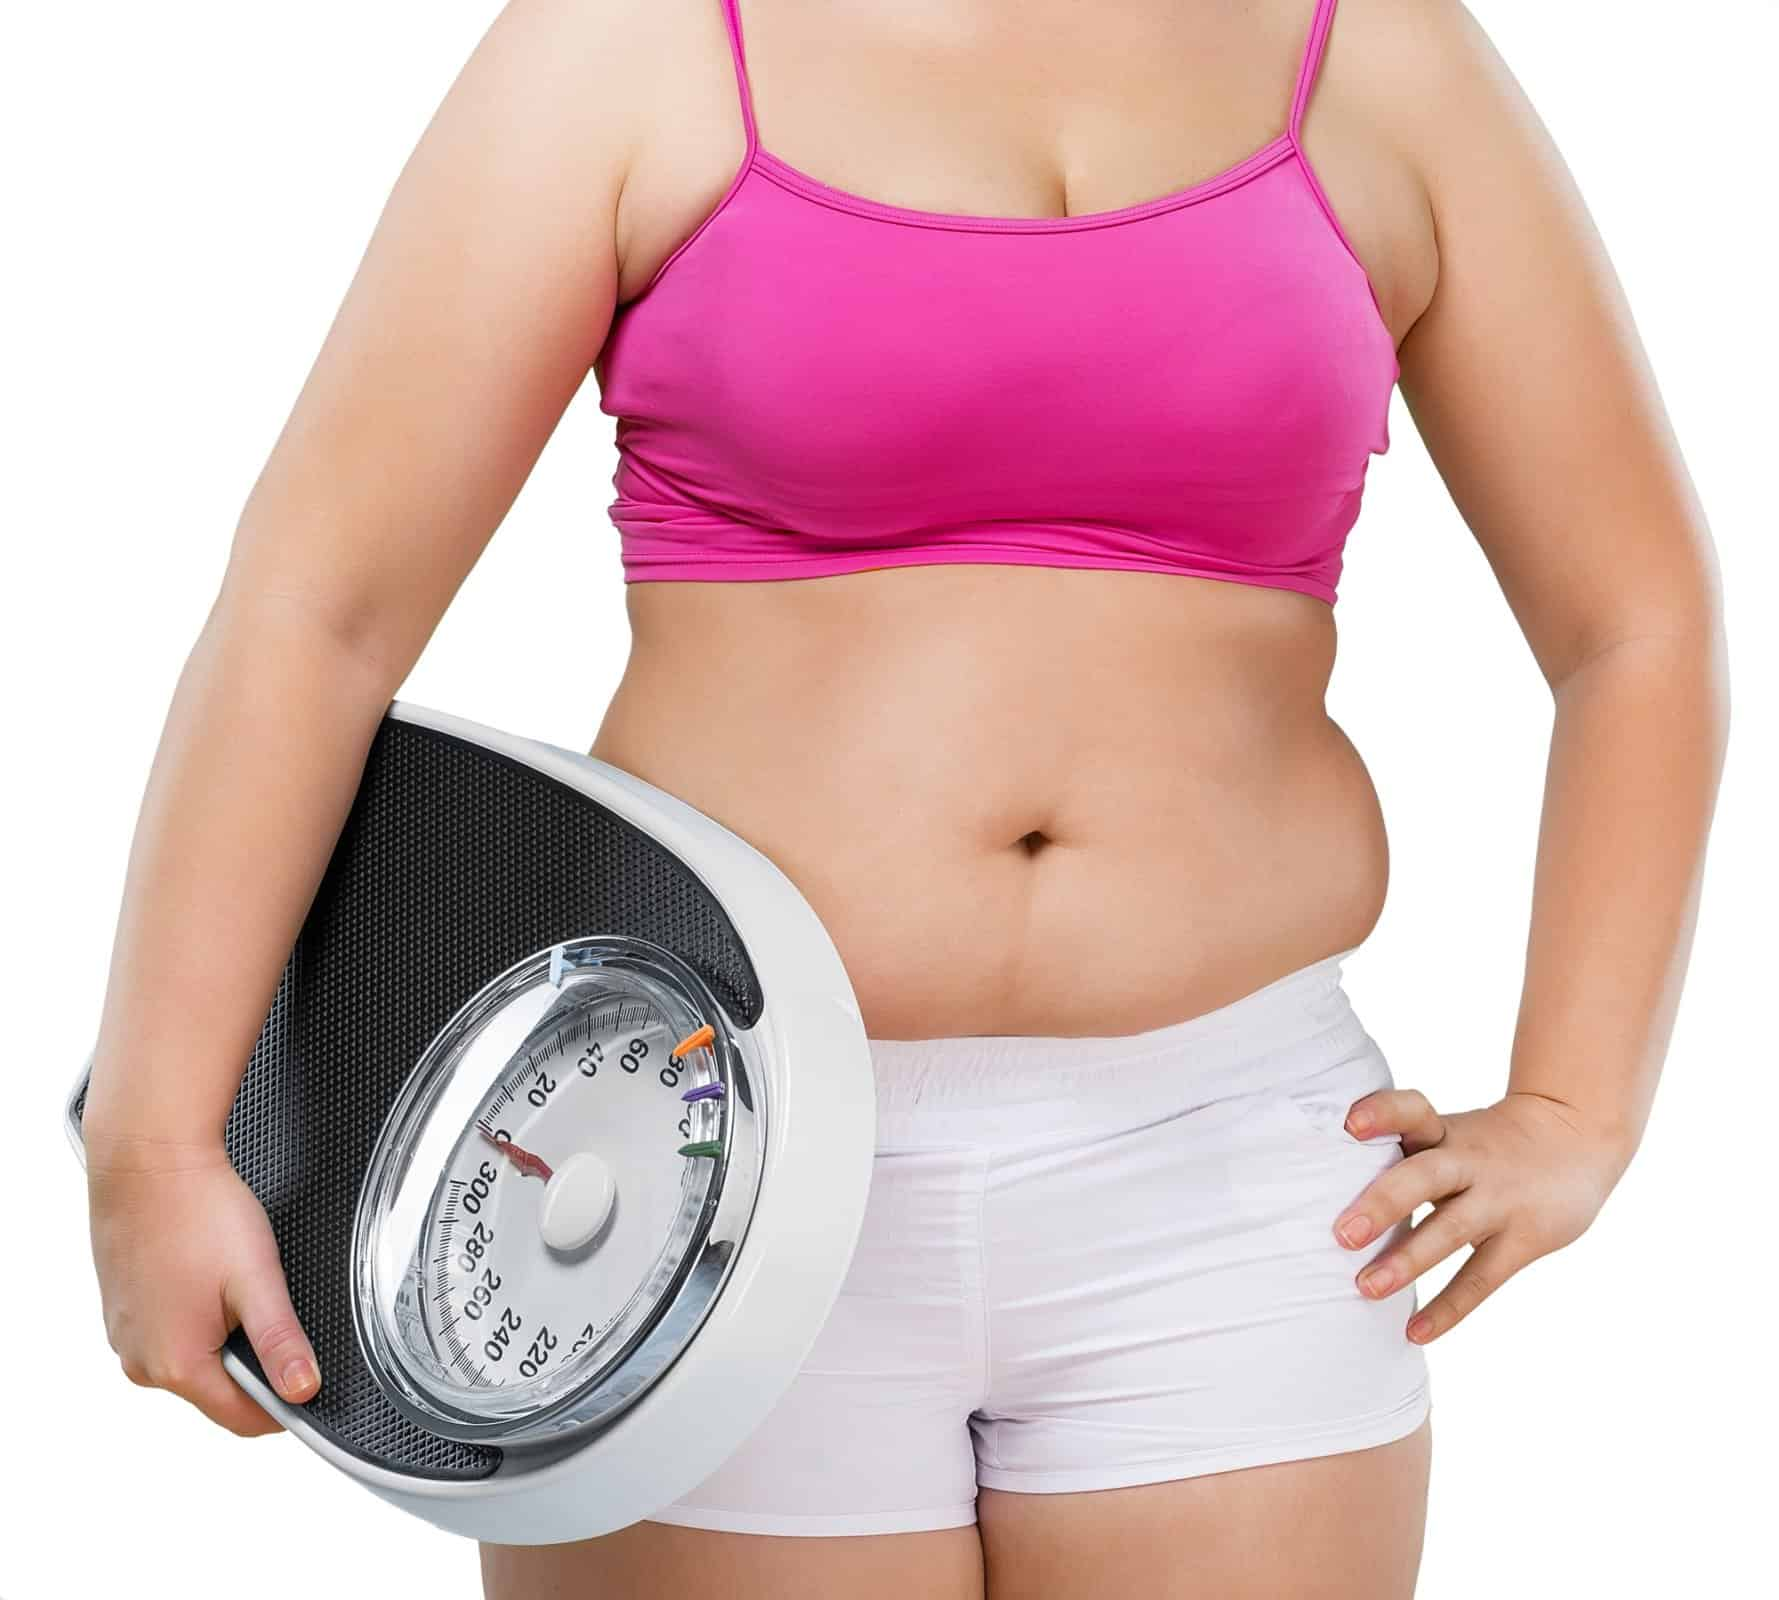 Woman-Looking-Lose-Weight